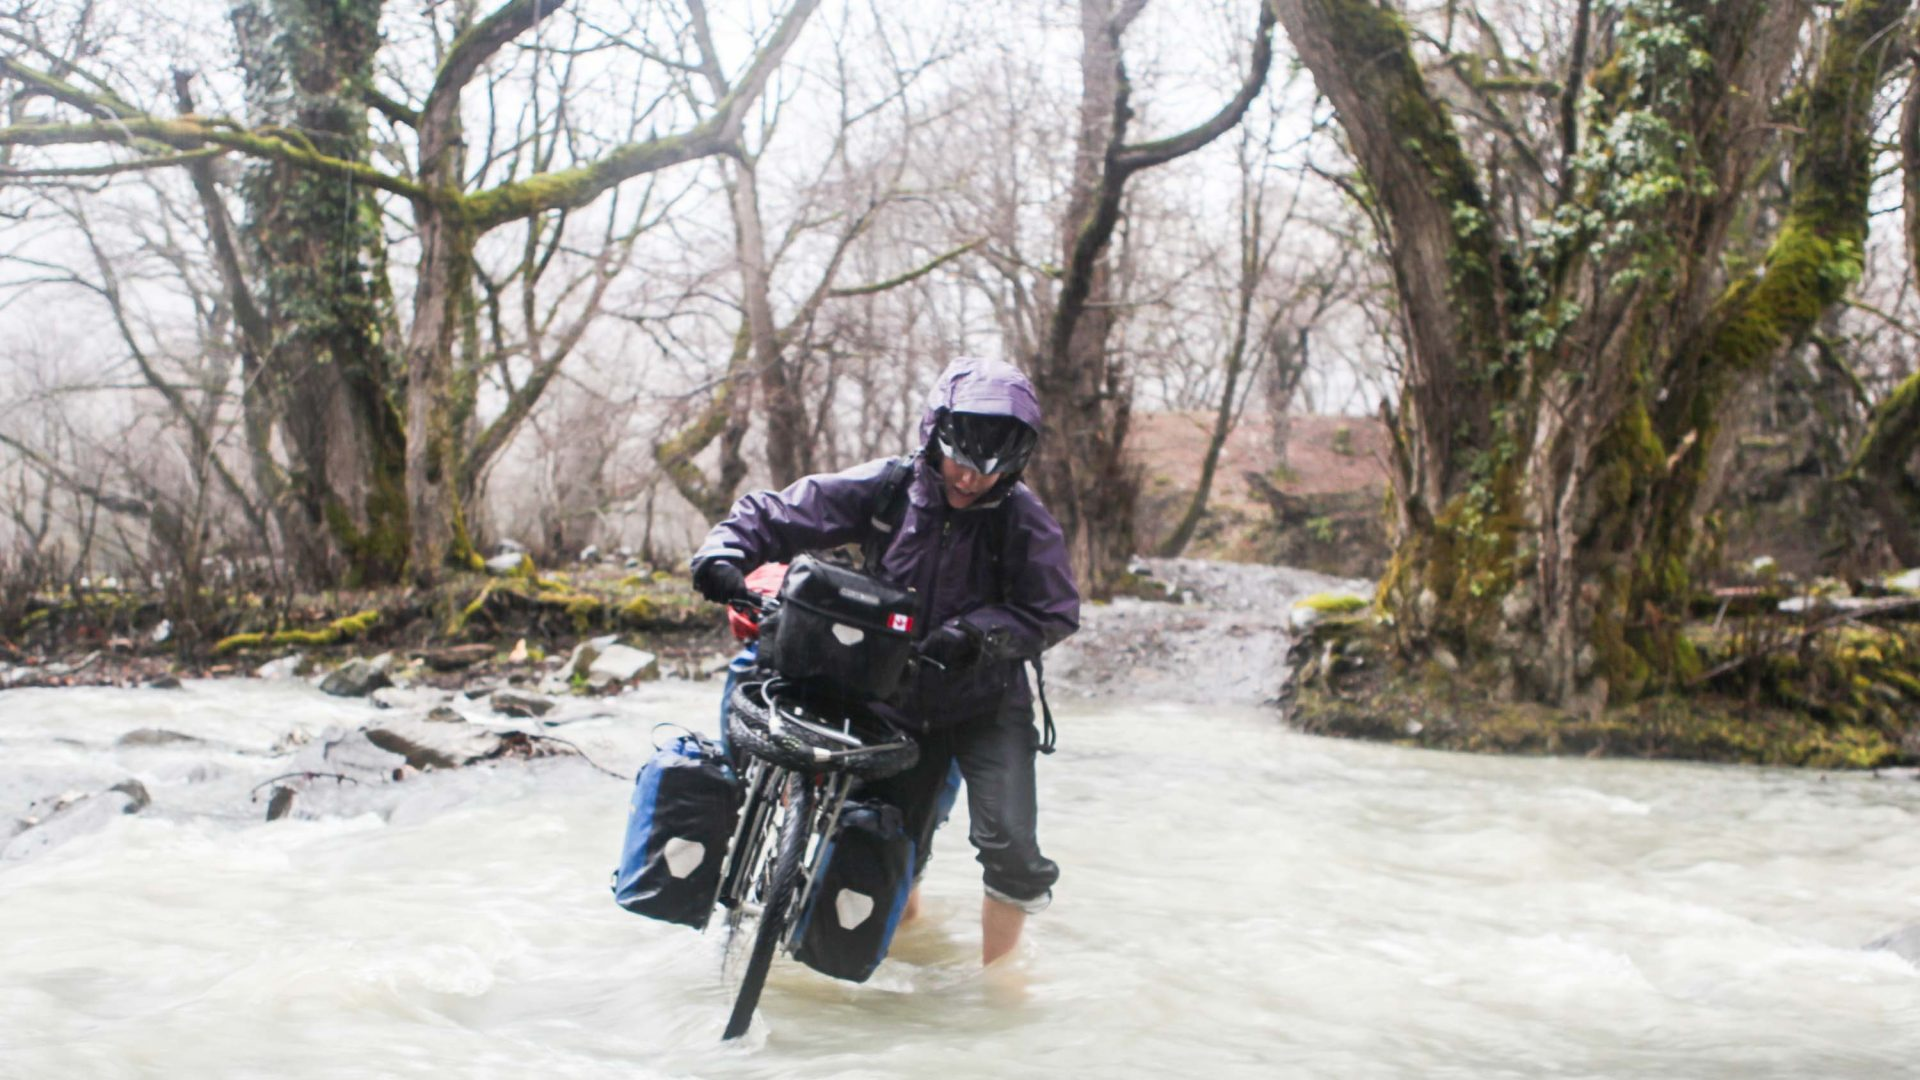 A treacherous bike river crossing in Azerbaijan.